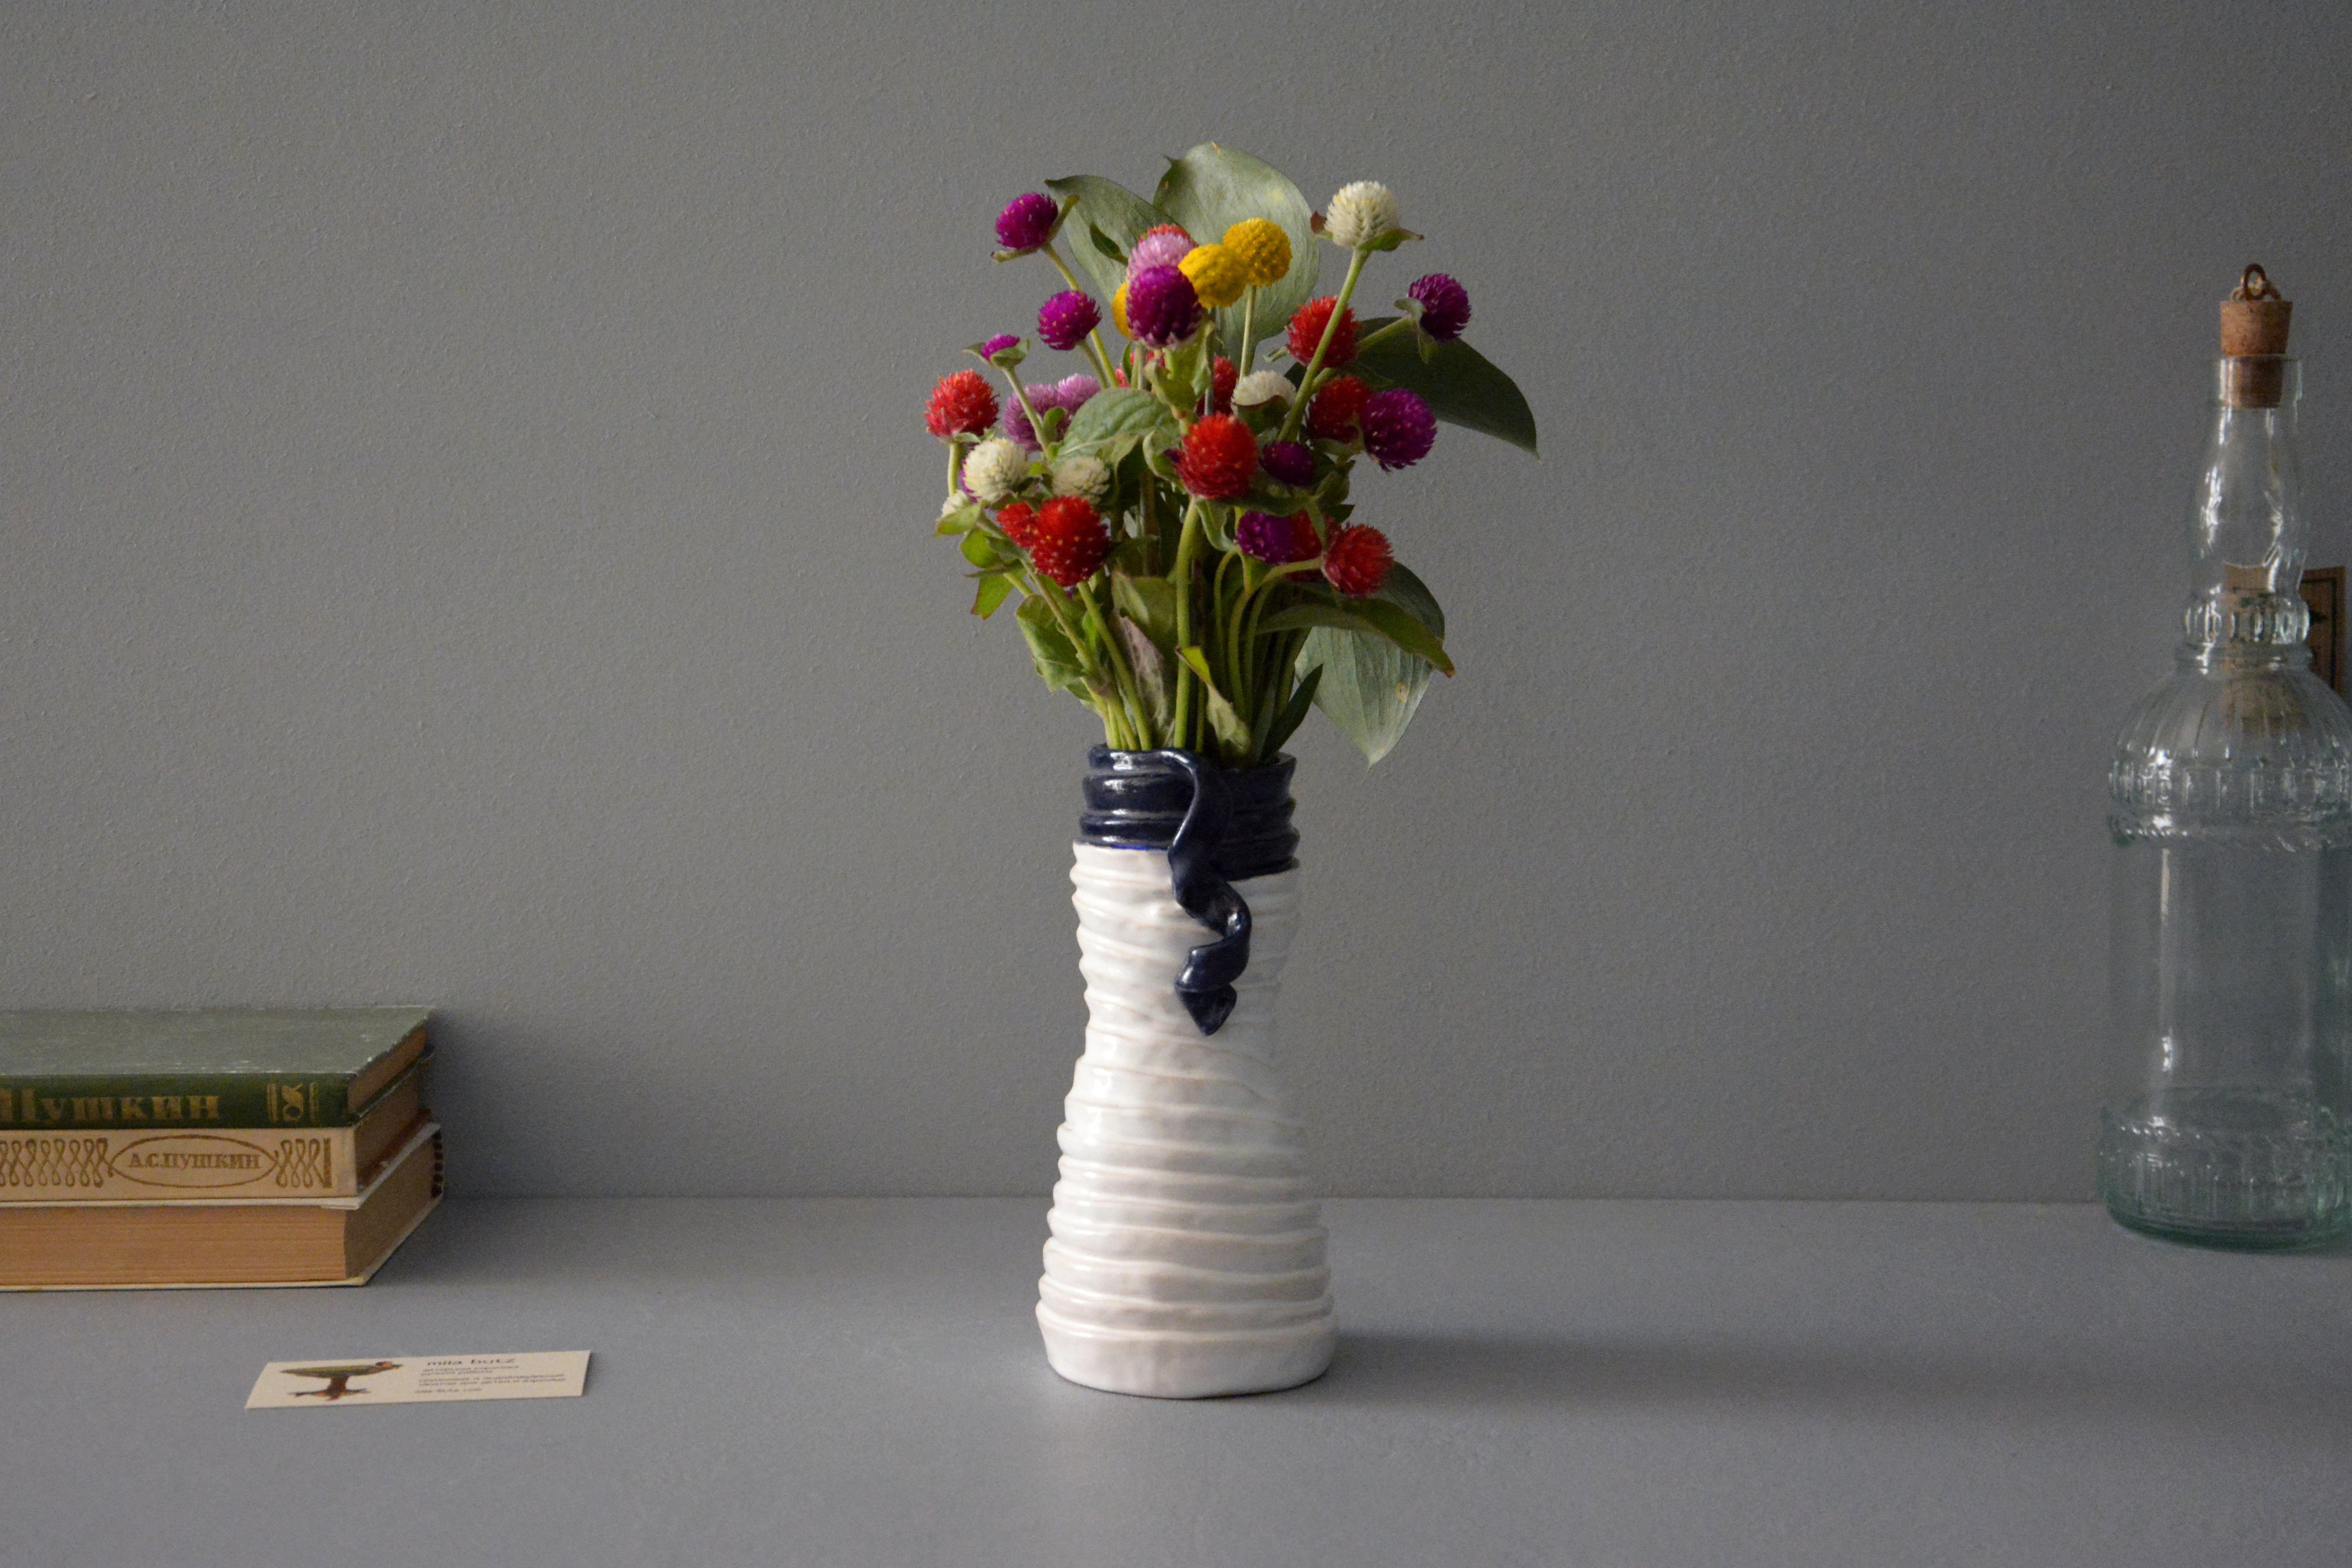 White-blue ceramic vase «Tourniquets and webbing», height - 18 cm, color - white, photo 7 of 7. 1245.